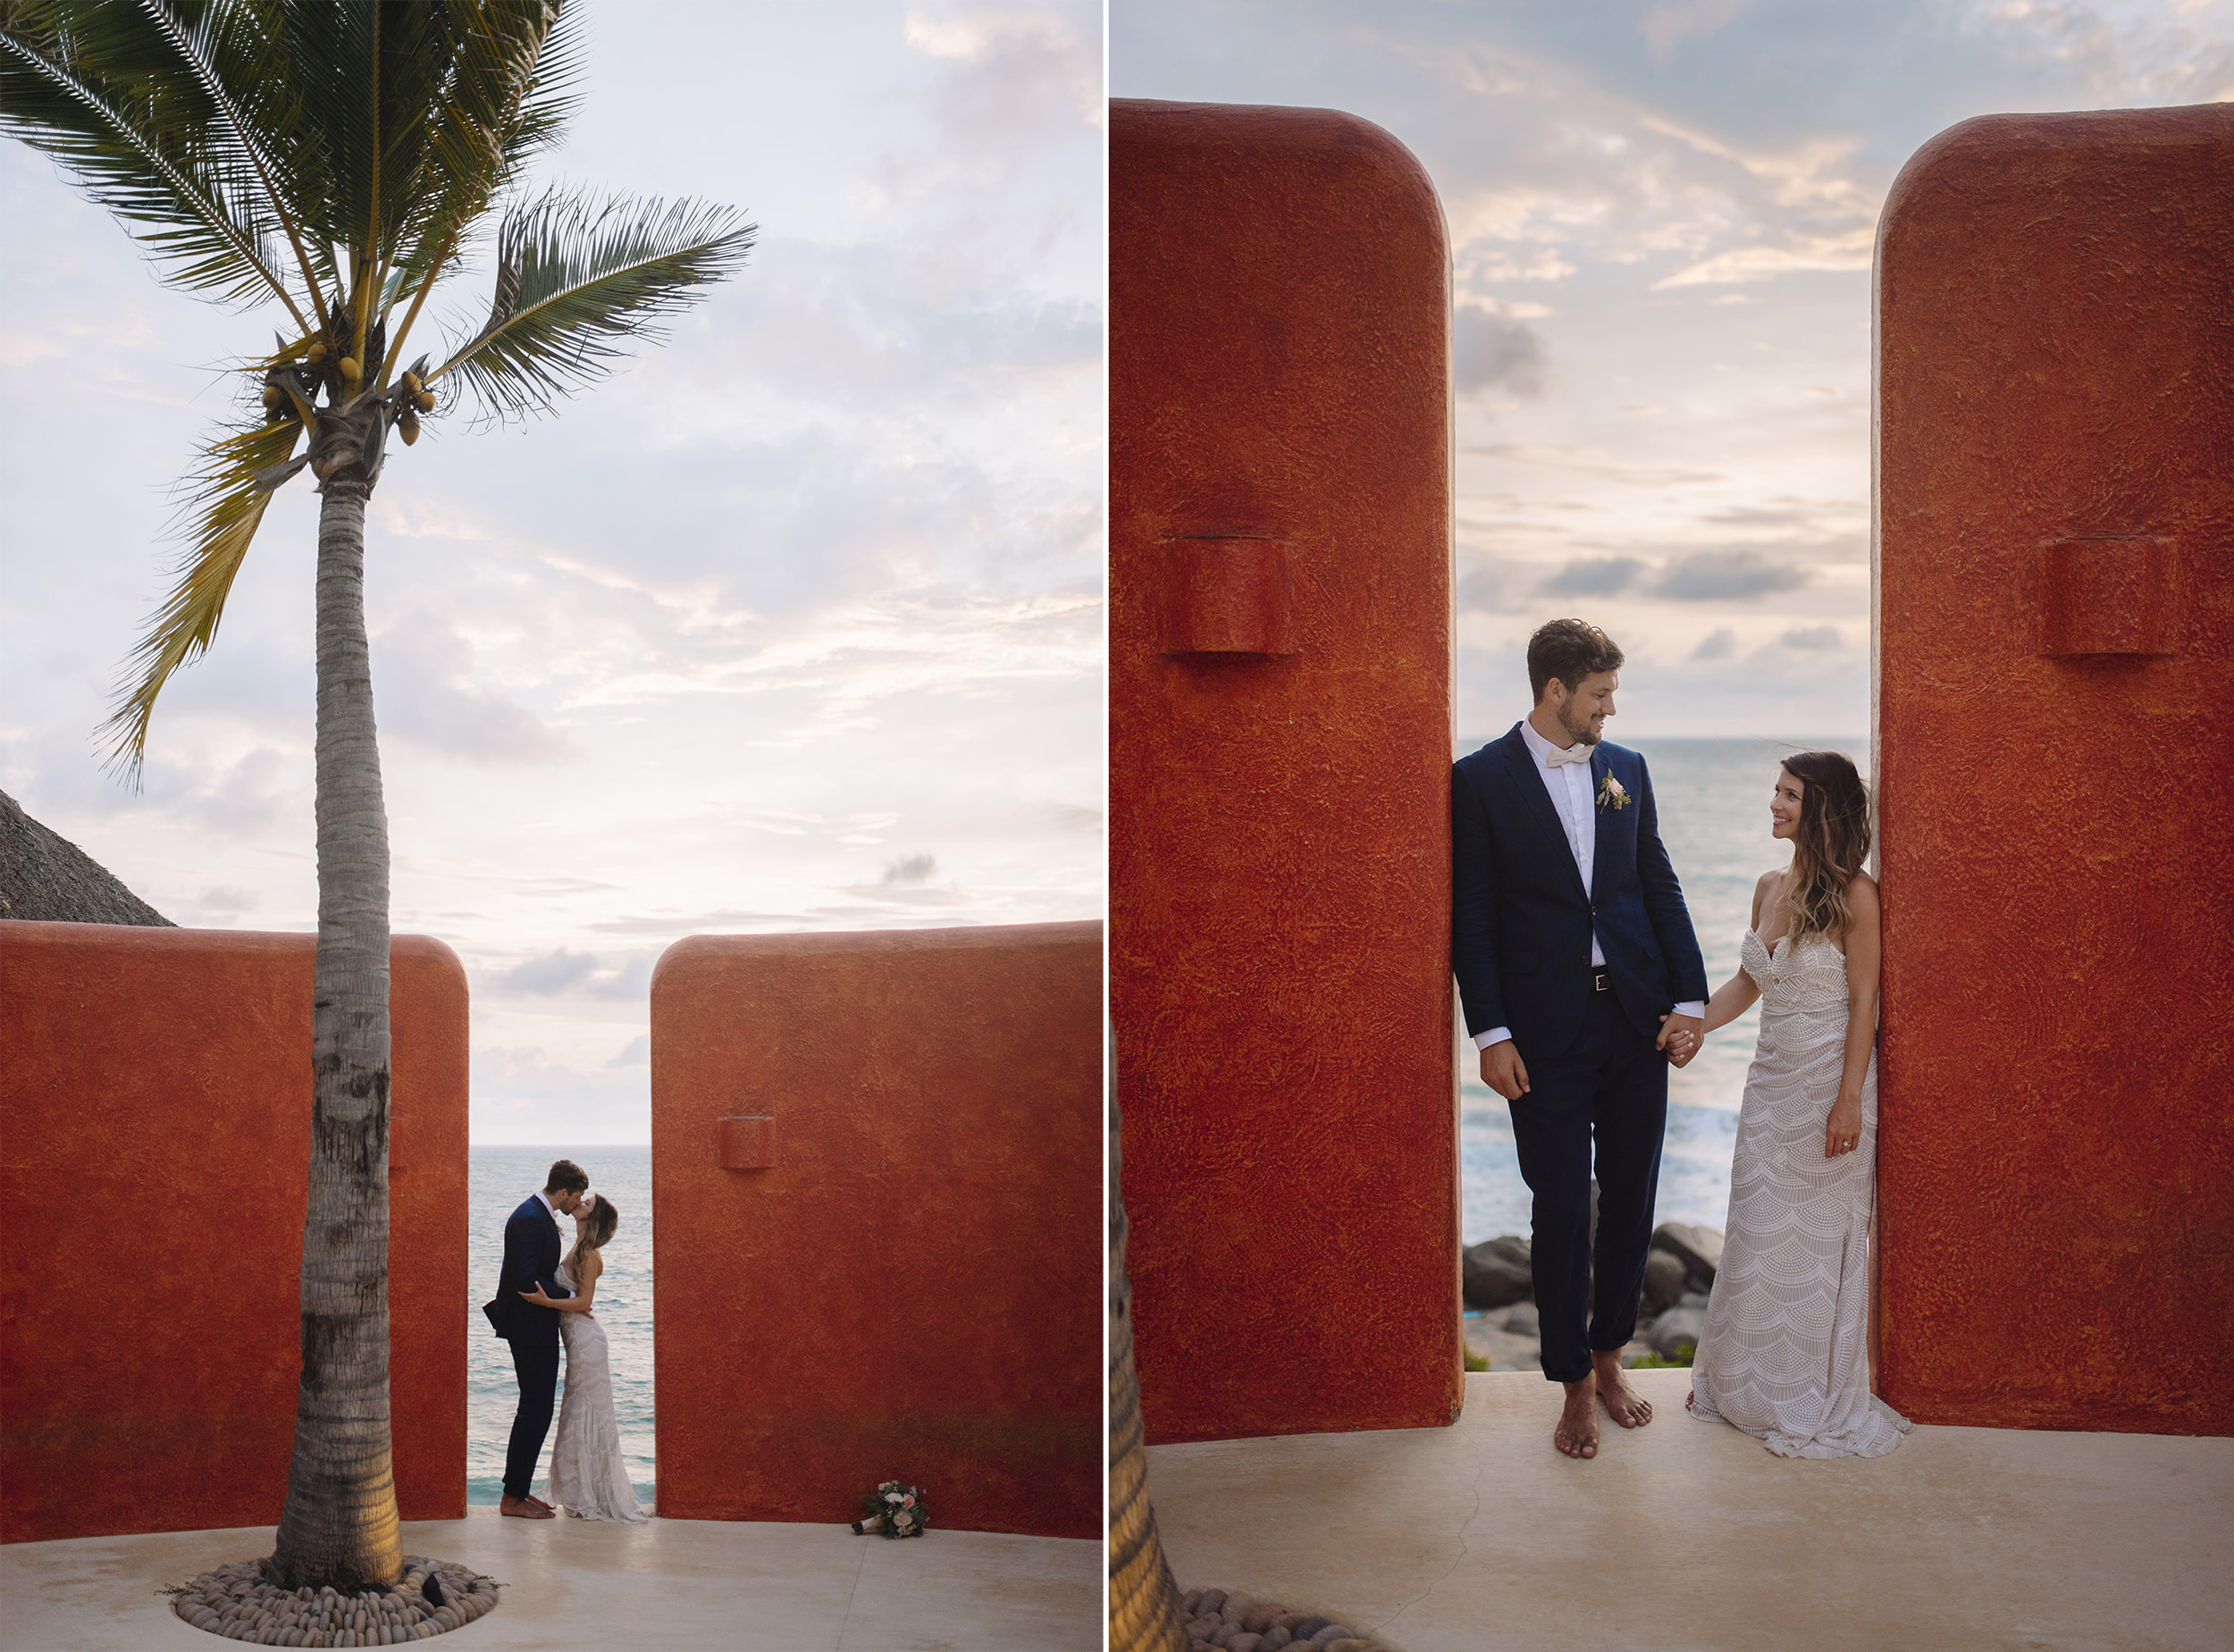 Colby-and-Jess-Intimate-Destination-Wedding-Sayulita-Puerto-Vallarta-Mexico178.jpg